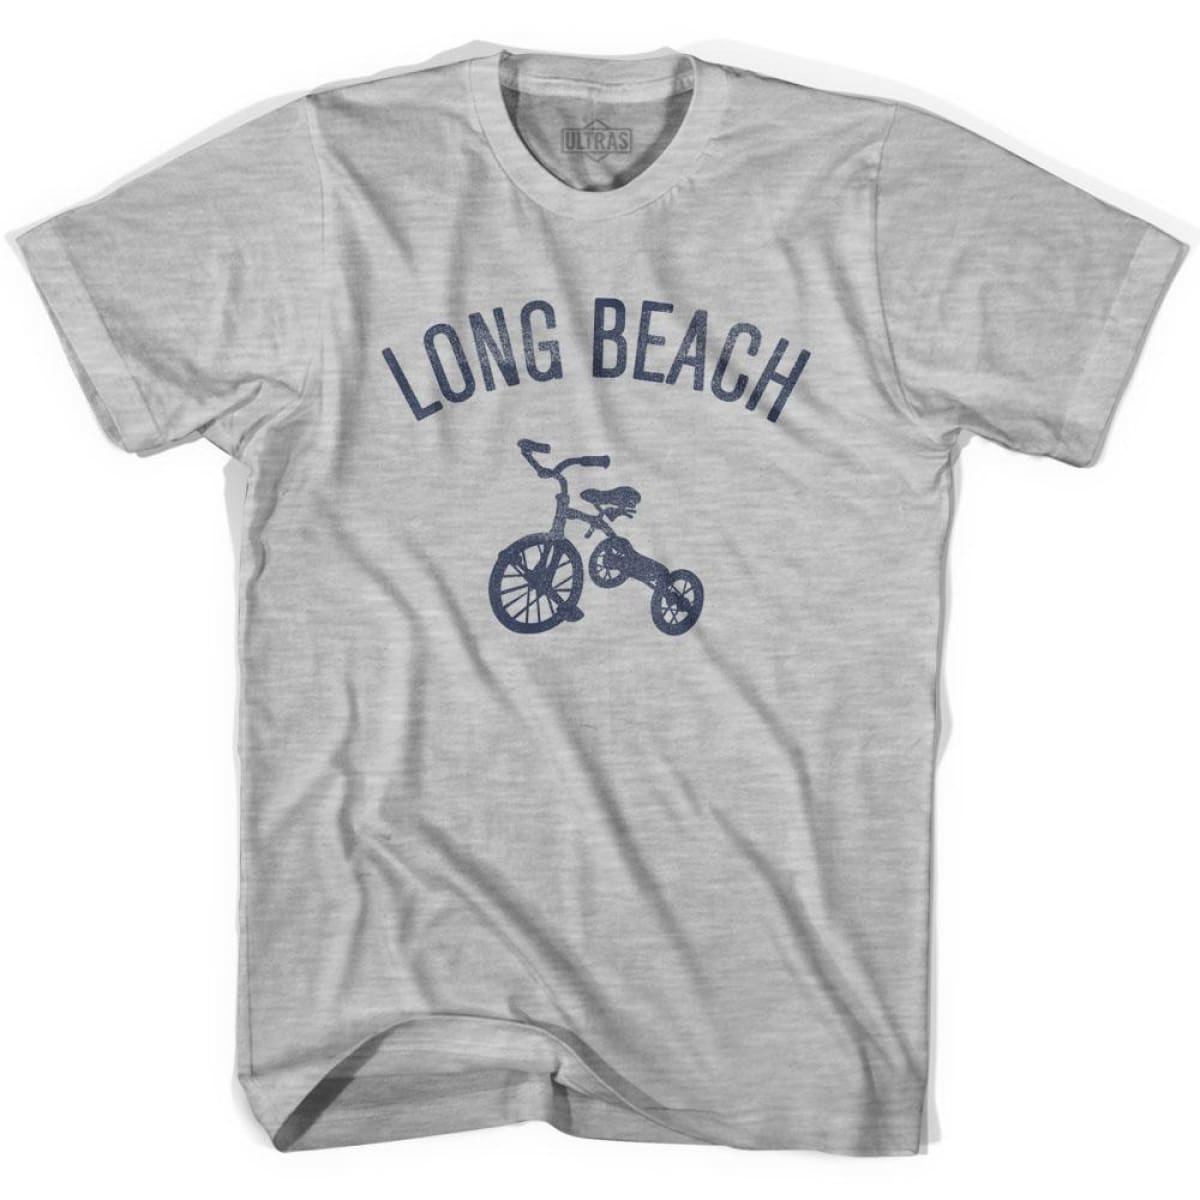 Long Beach City Tricycle Youth Cotton T-shirt - Tricycle City